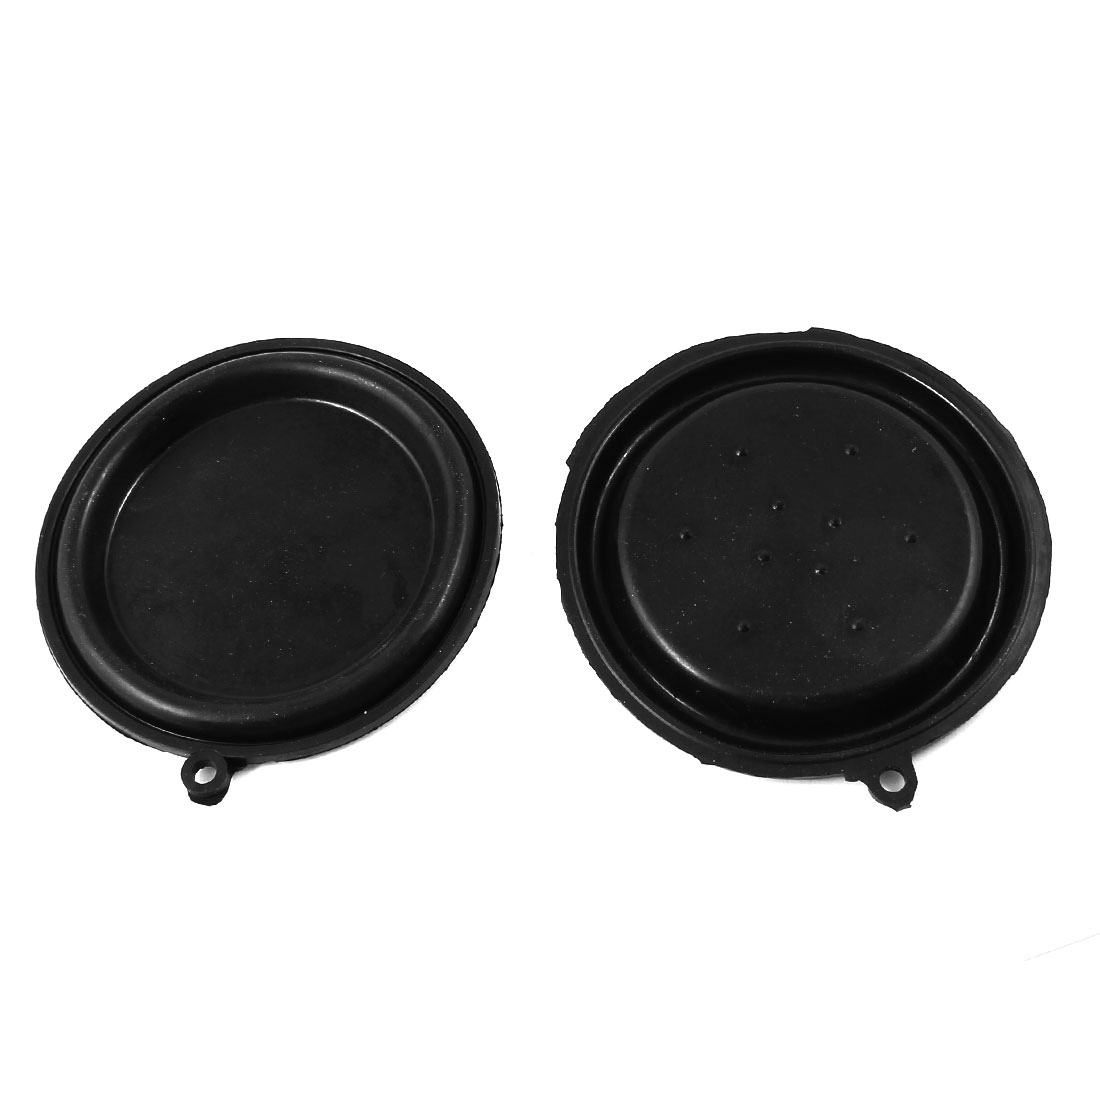 "2 Pcs 85mm 3.3"" Diameter Water Heater Diaphragms Seal Gasket Black"